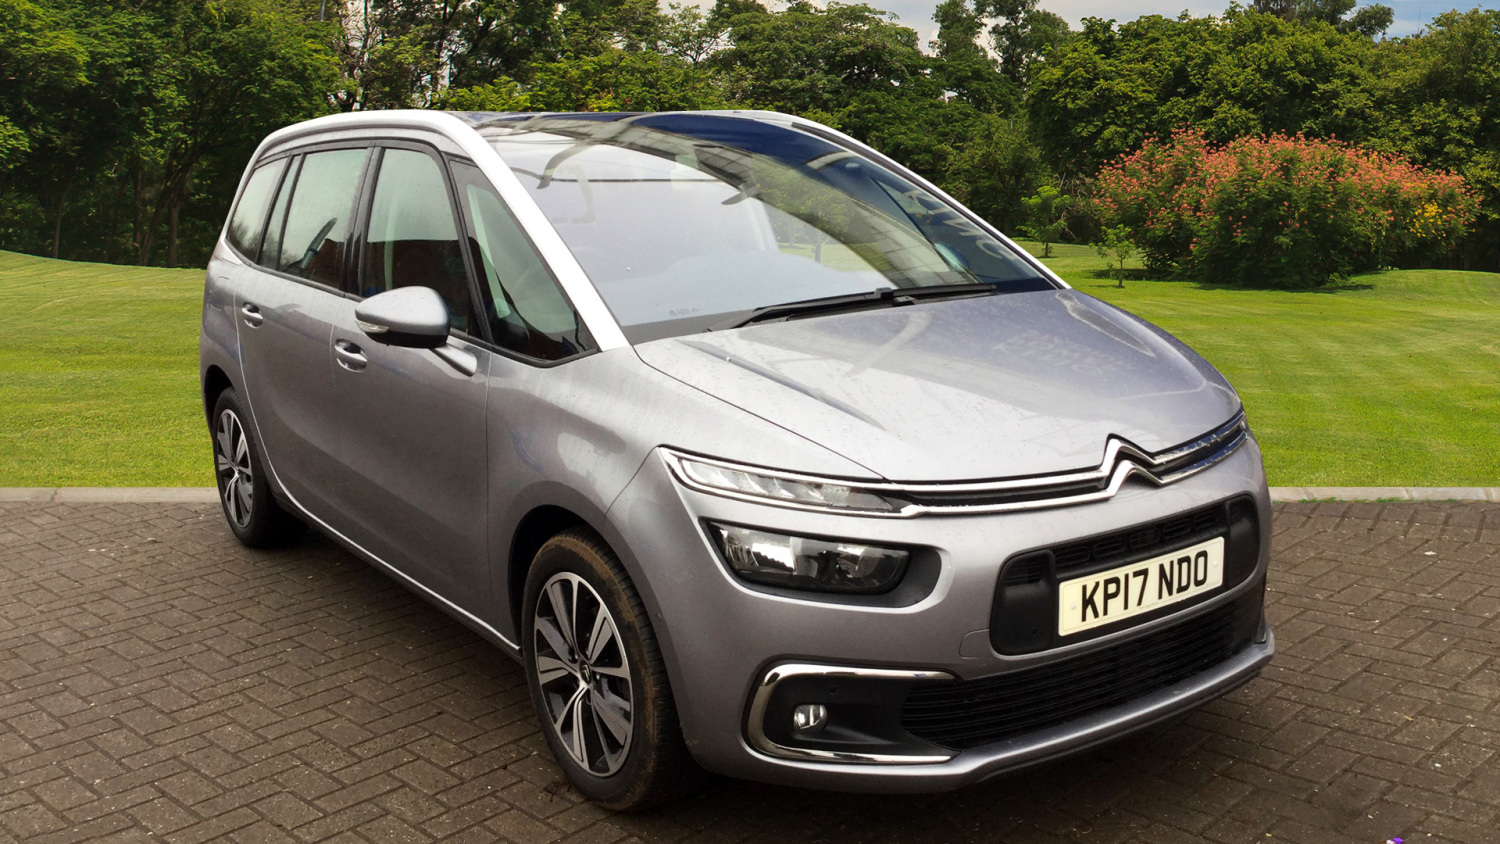 buy online citroen grand c4 picasso 1 6 bluehdi feel 5dr diesel estate for sale bristol street. Black Bedroom Furniture Sets. Home Design Ideas